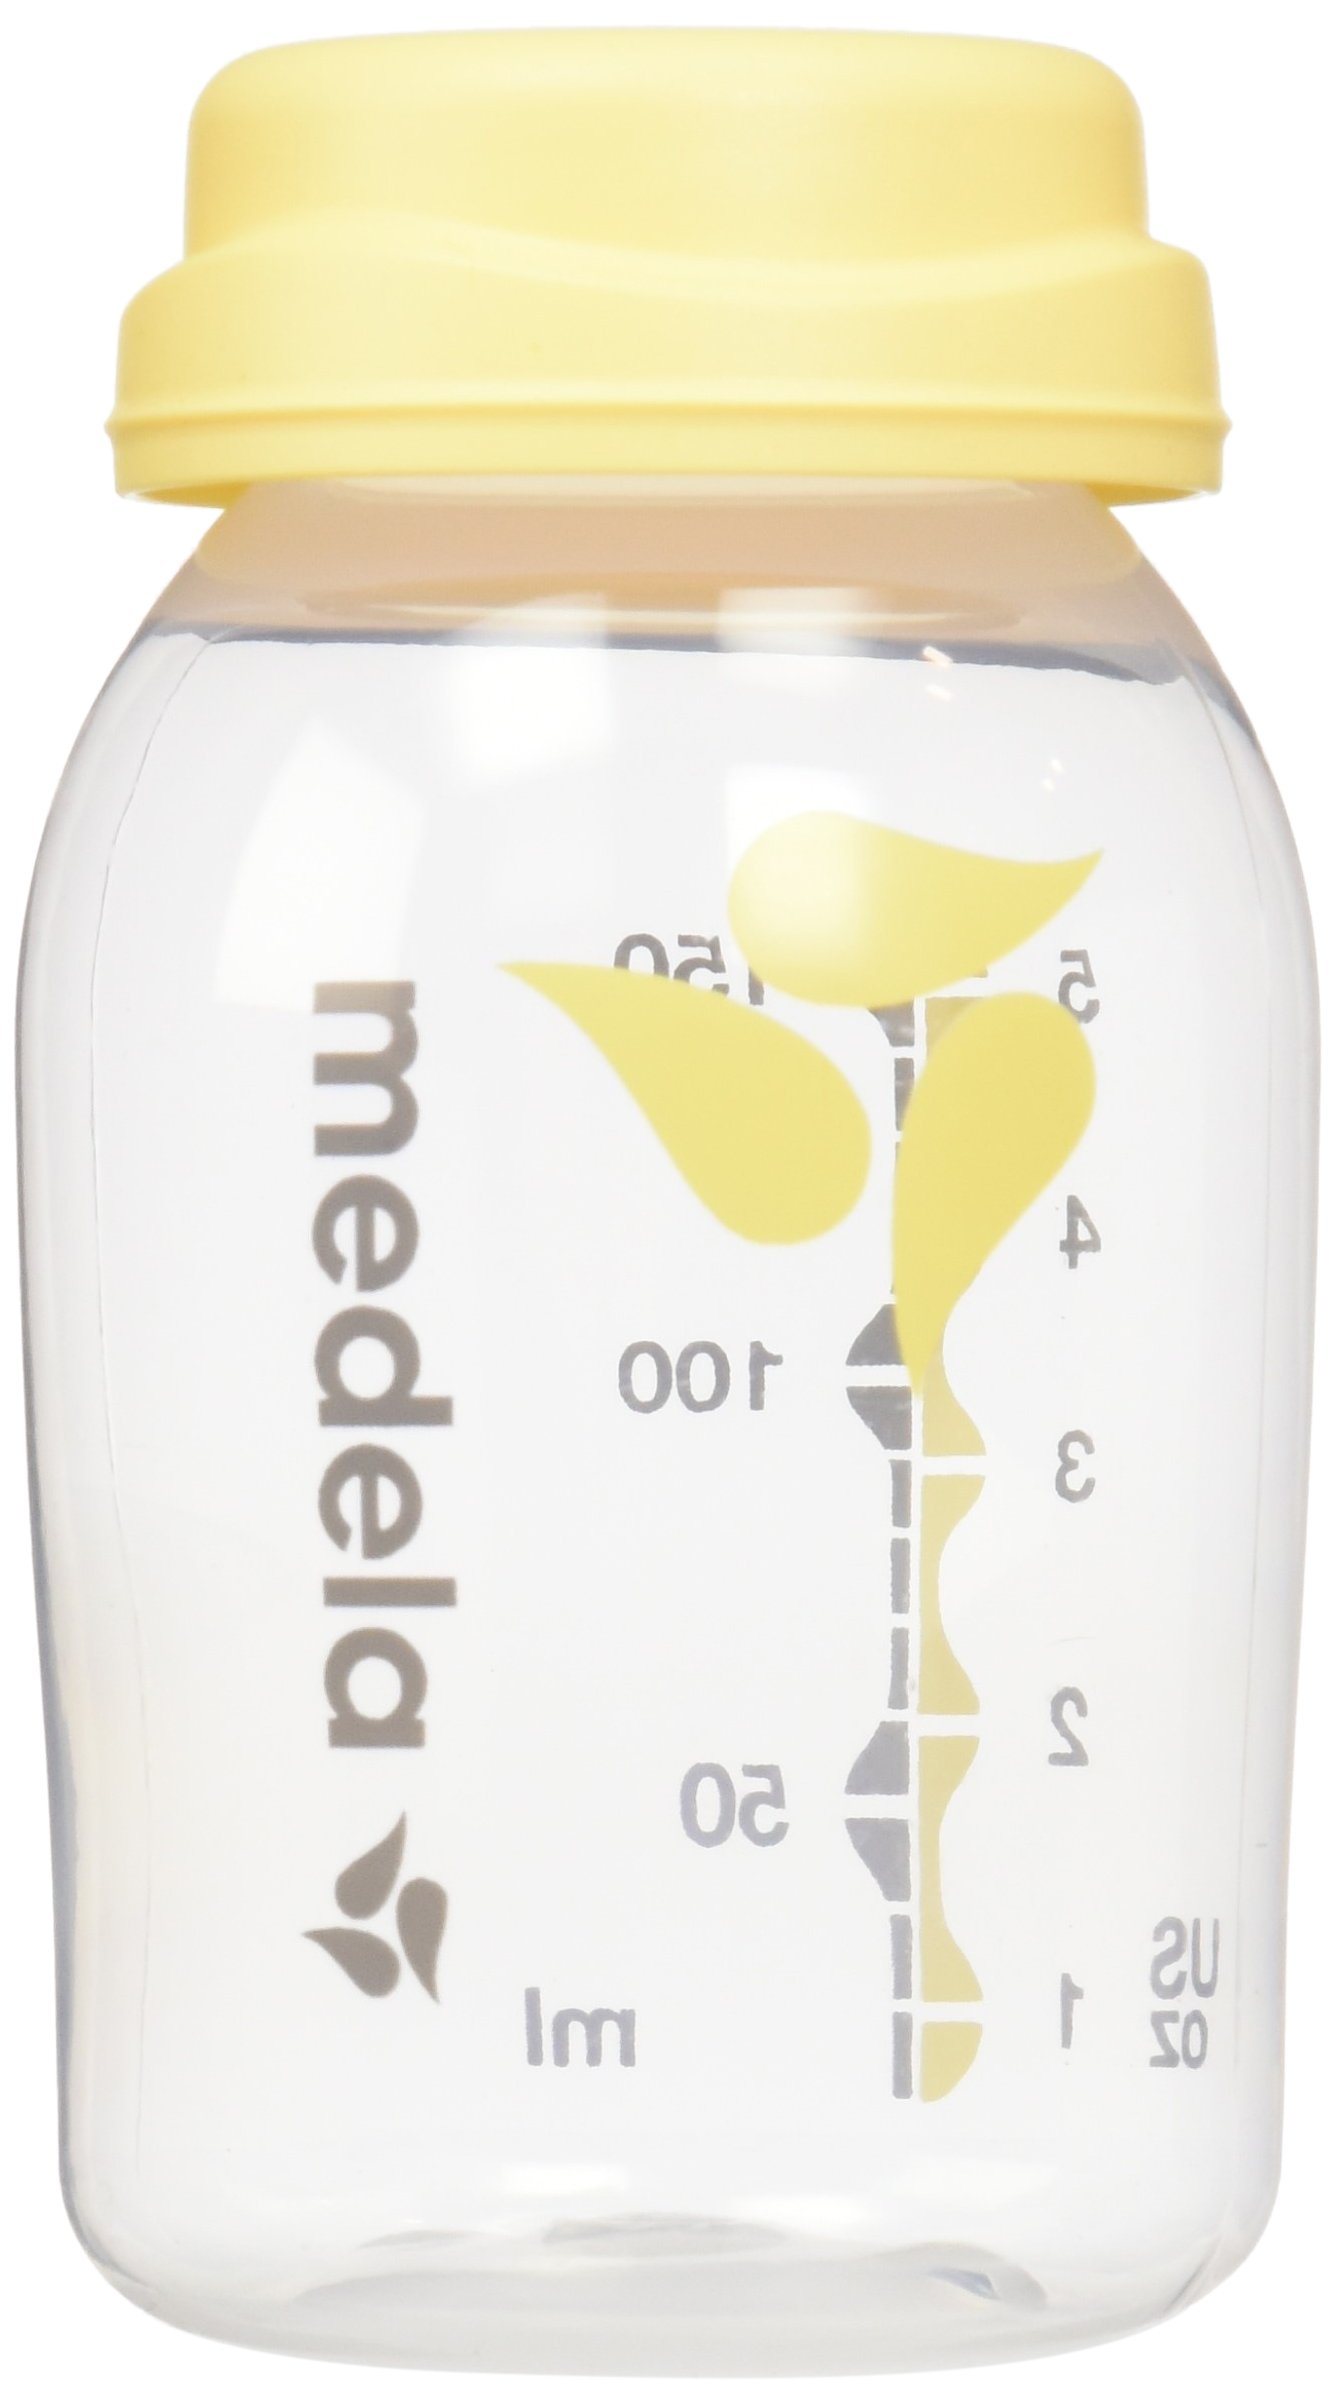 Medela Breast Milk Collection and Storage Bottles, 6 Pack, 5 Ounce Breastmilk Container, Compatible with Medela Breast Pumps and Made Without BPA by Medela